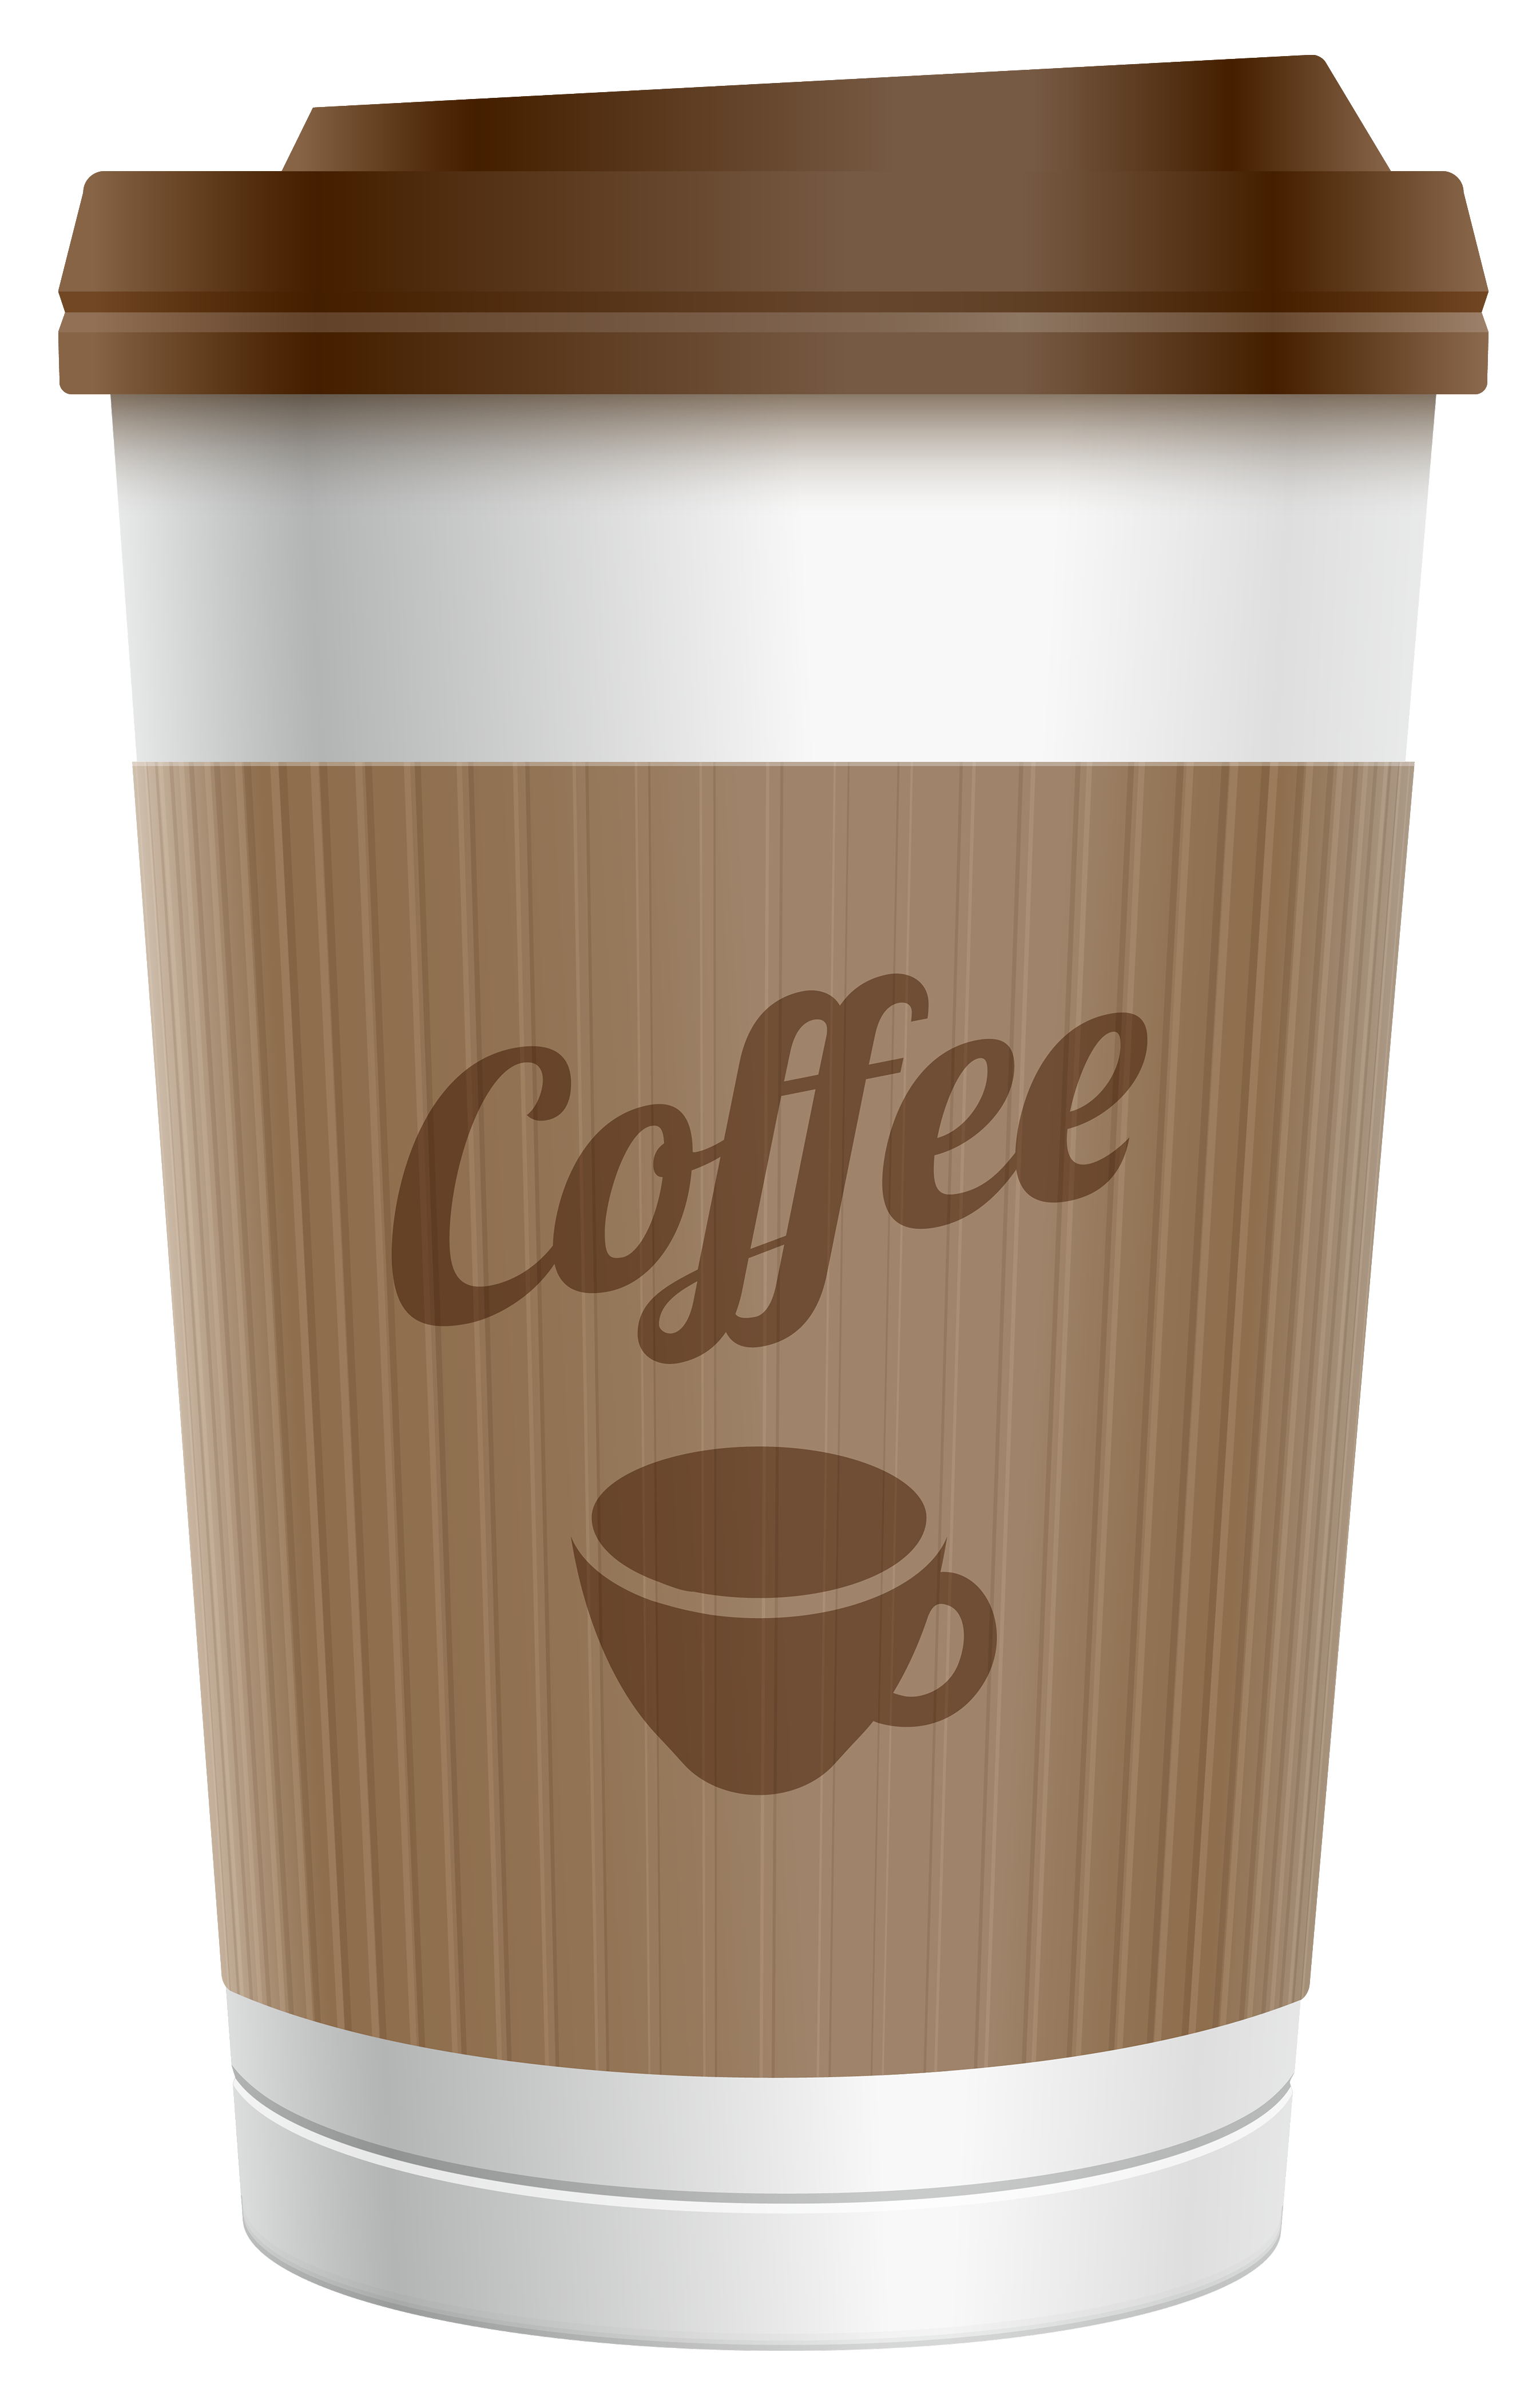 Free coffee png. Images transparent download pngmart